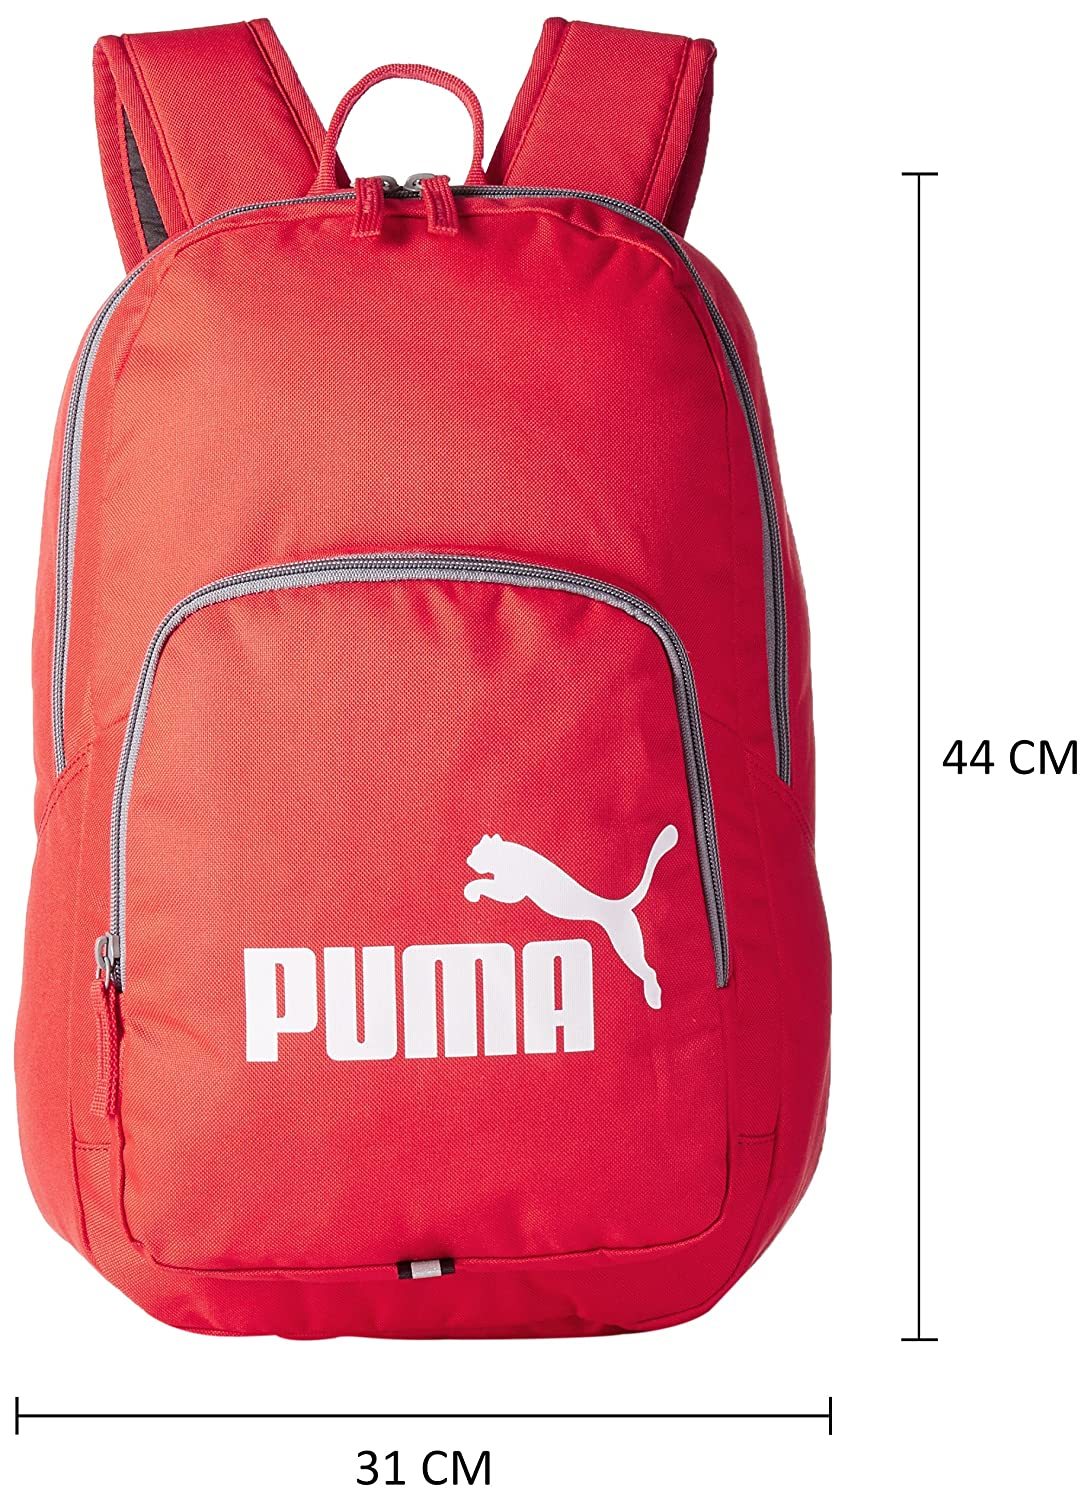 Phase Backpack 21 Ltrs Red Casual Backpack (7358919)  Amazon.in  Bags 24359a74b830d